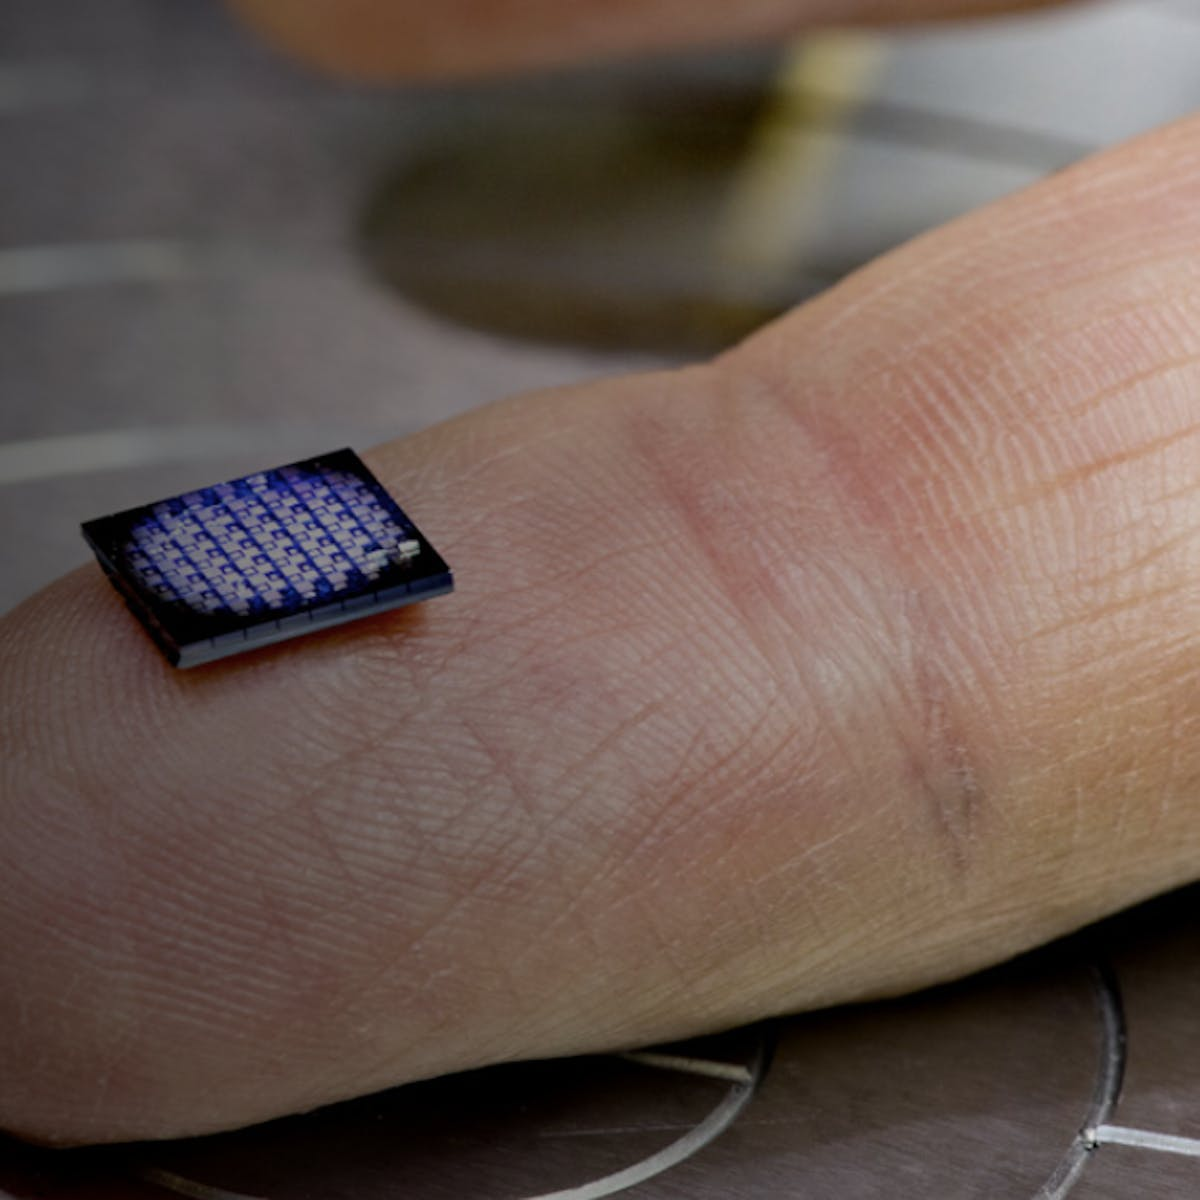 World's Smallest Computer Is the Size of a Grain of Salt